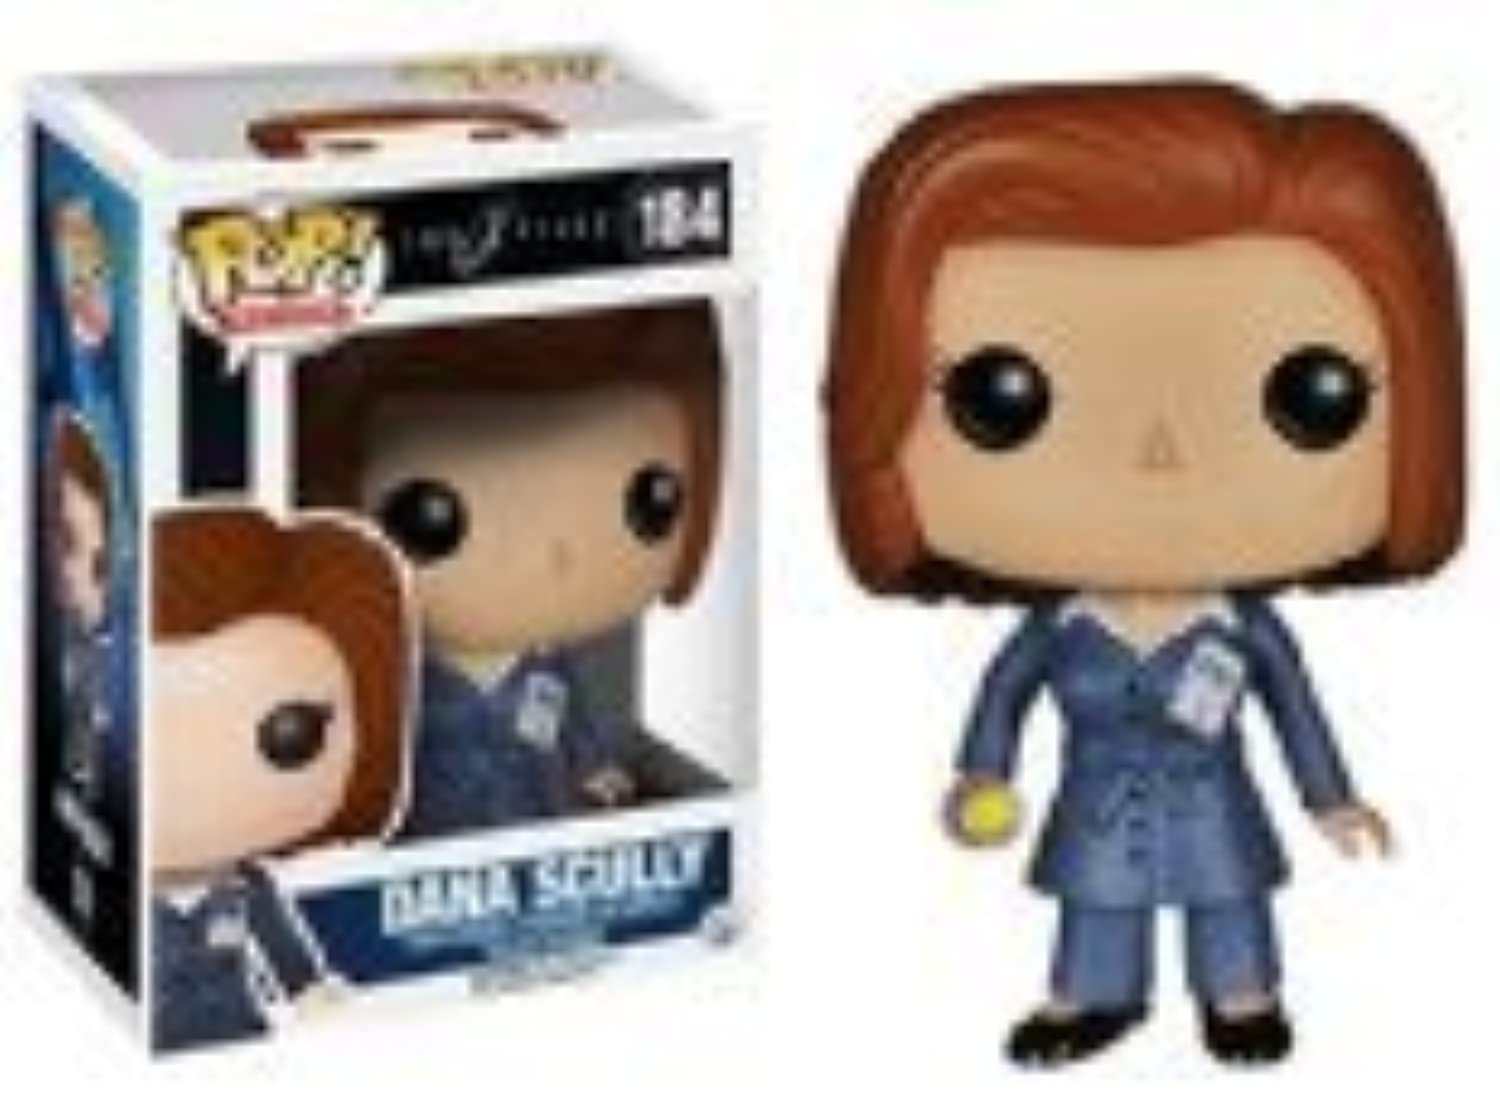 X-Files - Dana Scully by The X Files